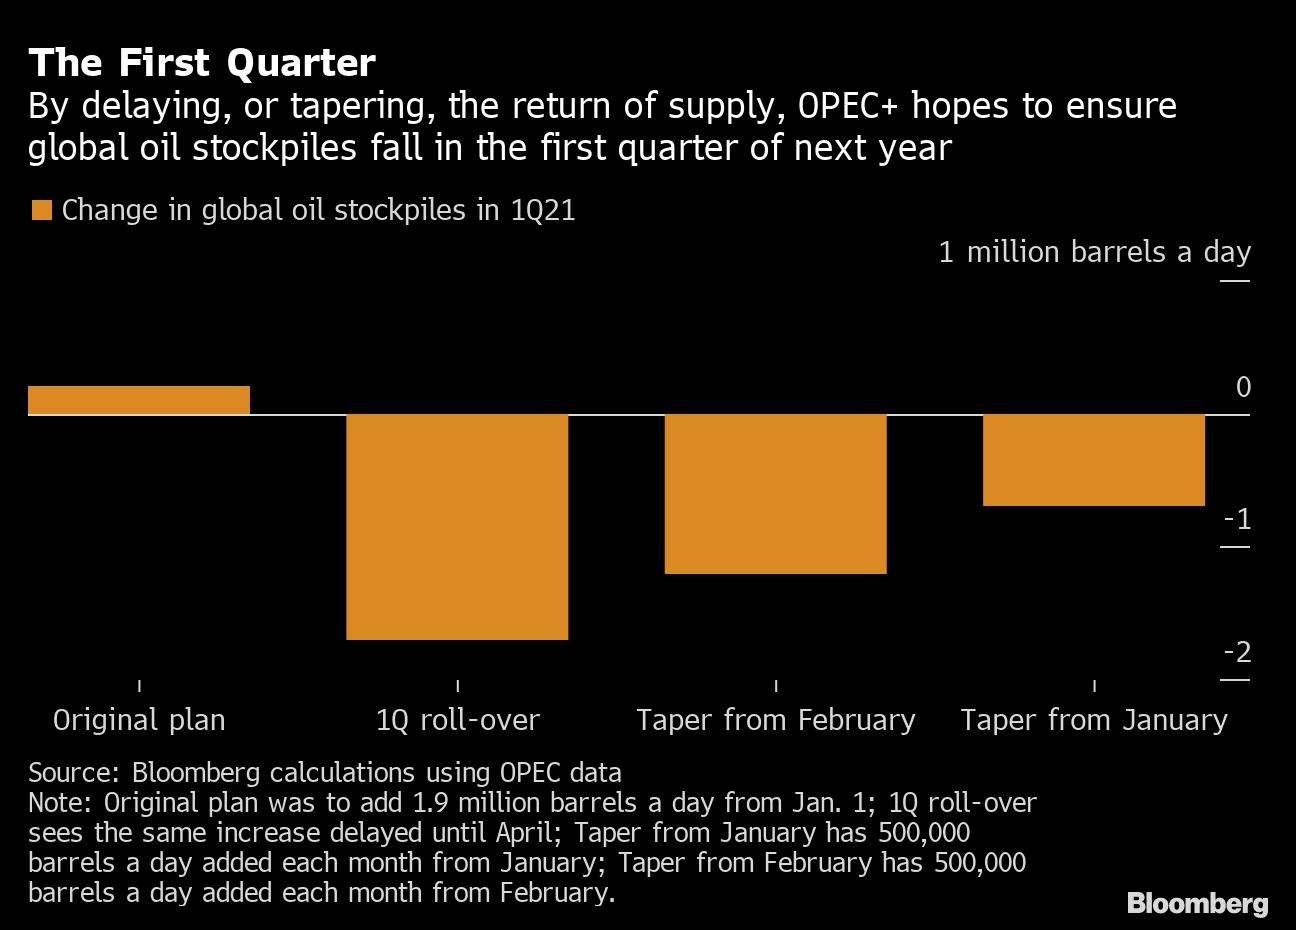 OPEC+ agrees to increase output by 500,000 barrels a day in January